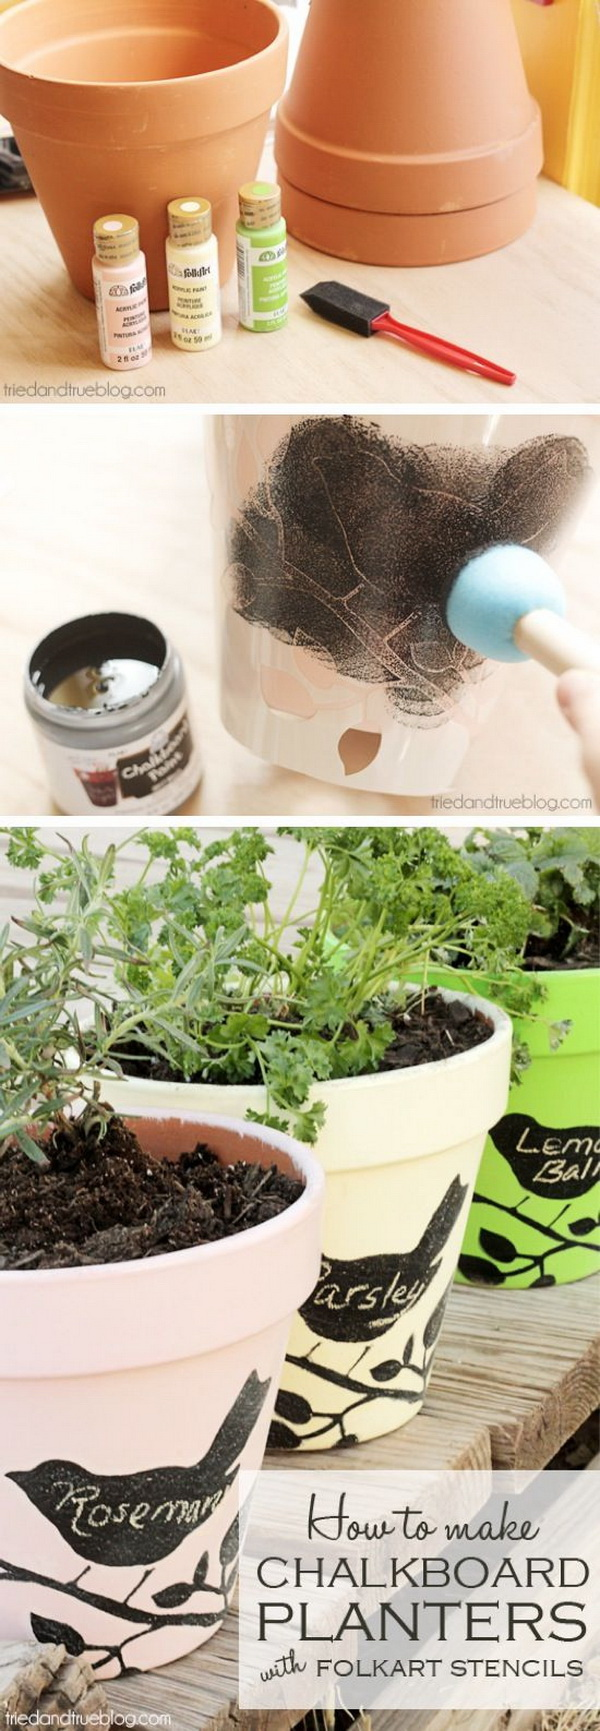 Chalkboard Painted Terracotta Pot Planters. & 17 Creative Ideas to Decorate with Terra Cotta Flower Pots - For ...